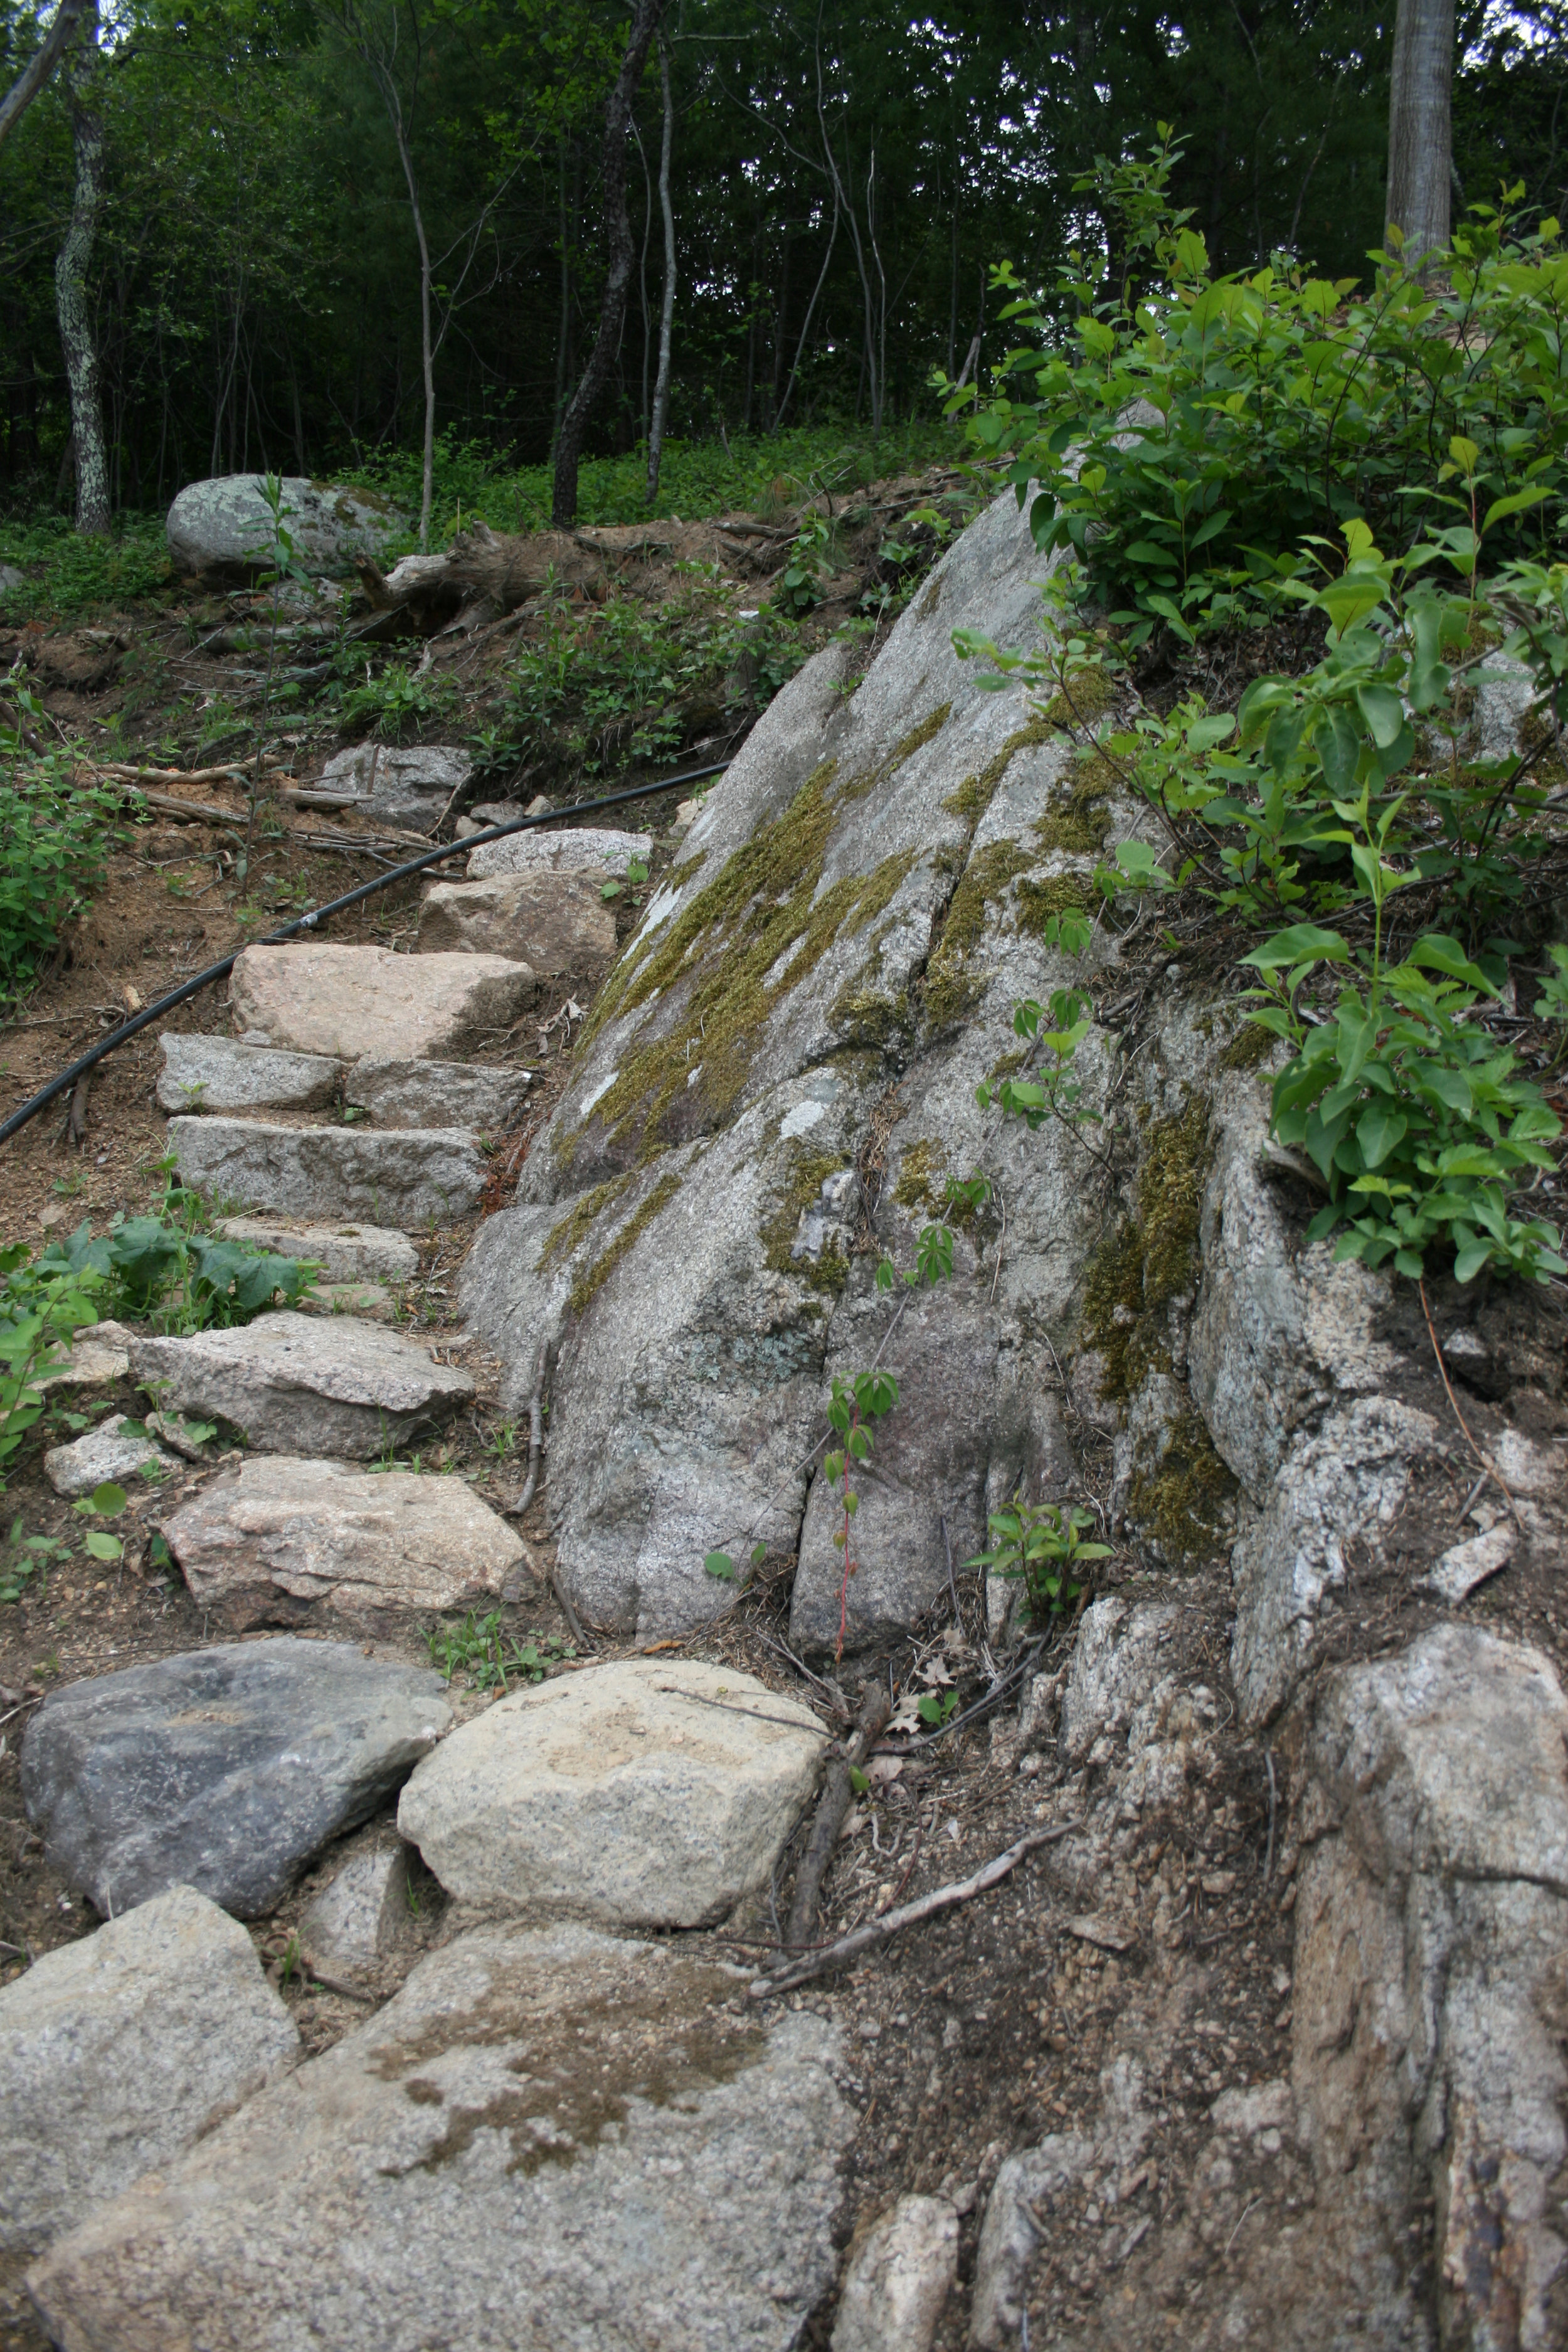 staircase wrapping around the stone out cropping up to the top terrace.